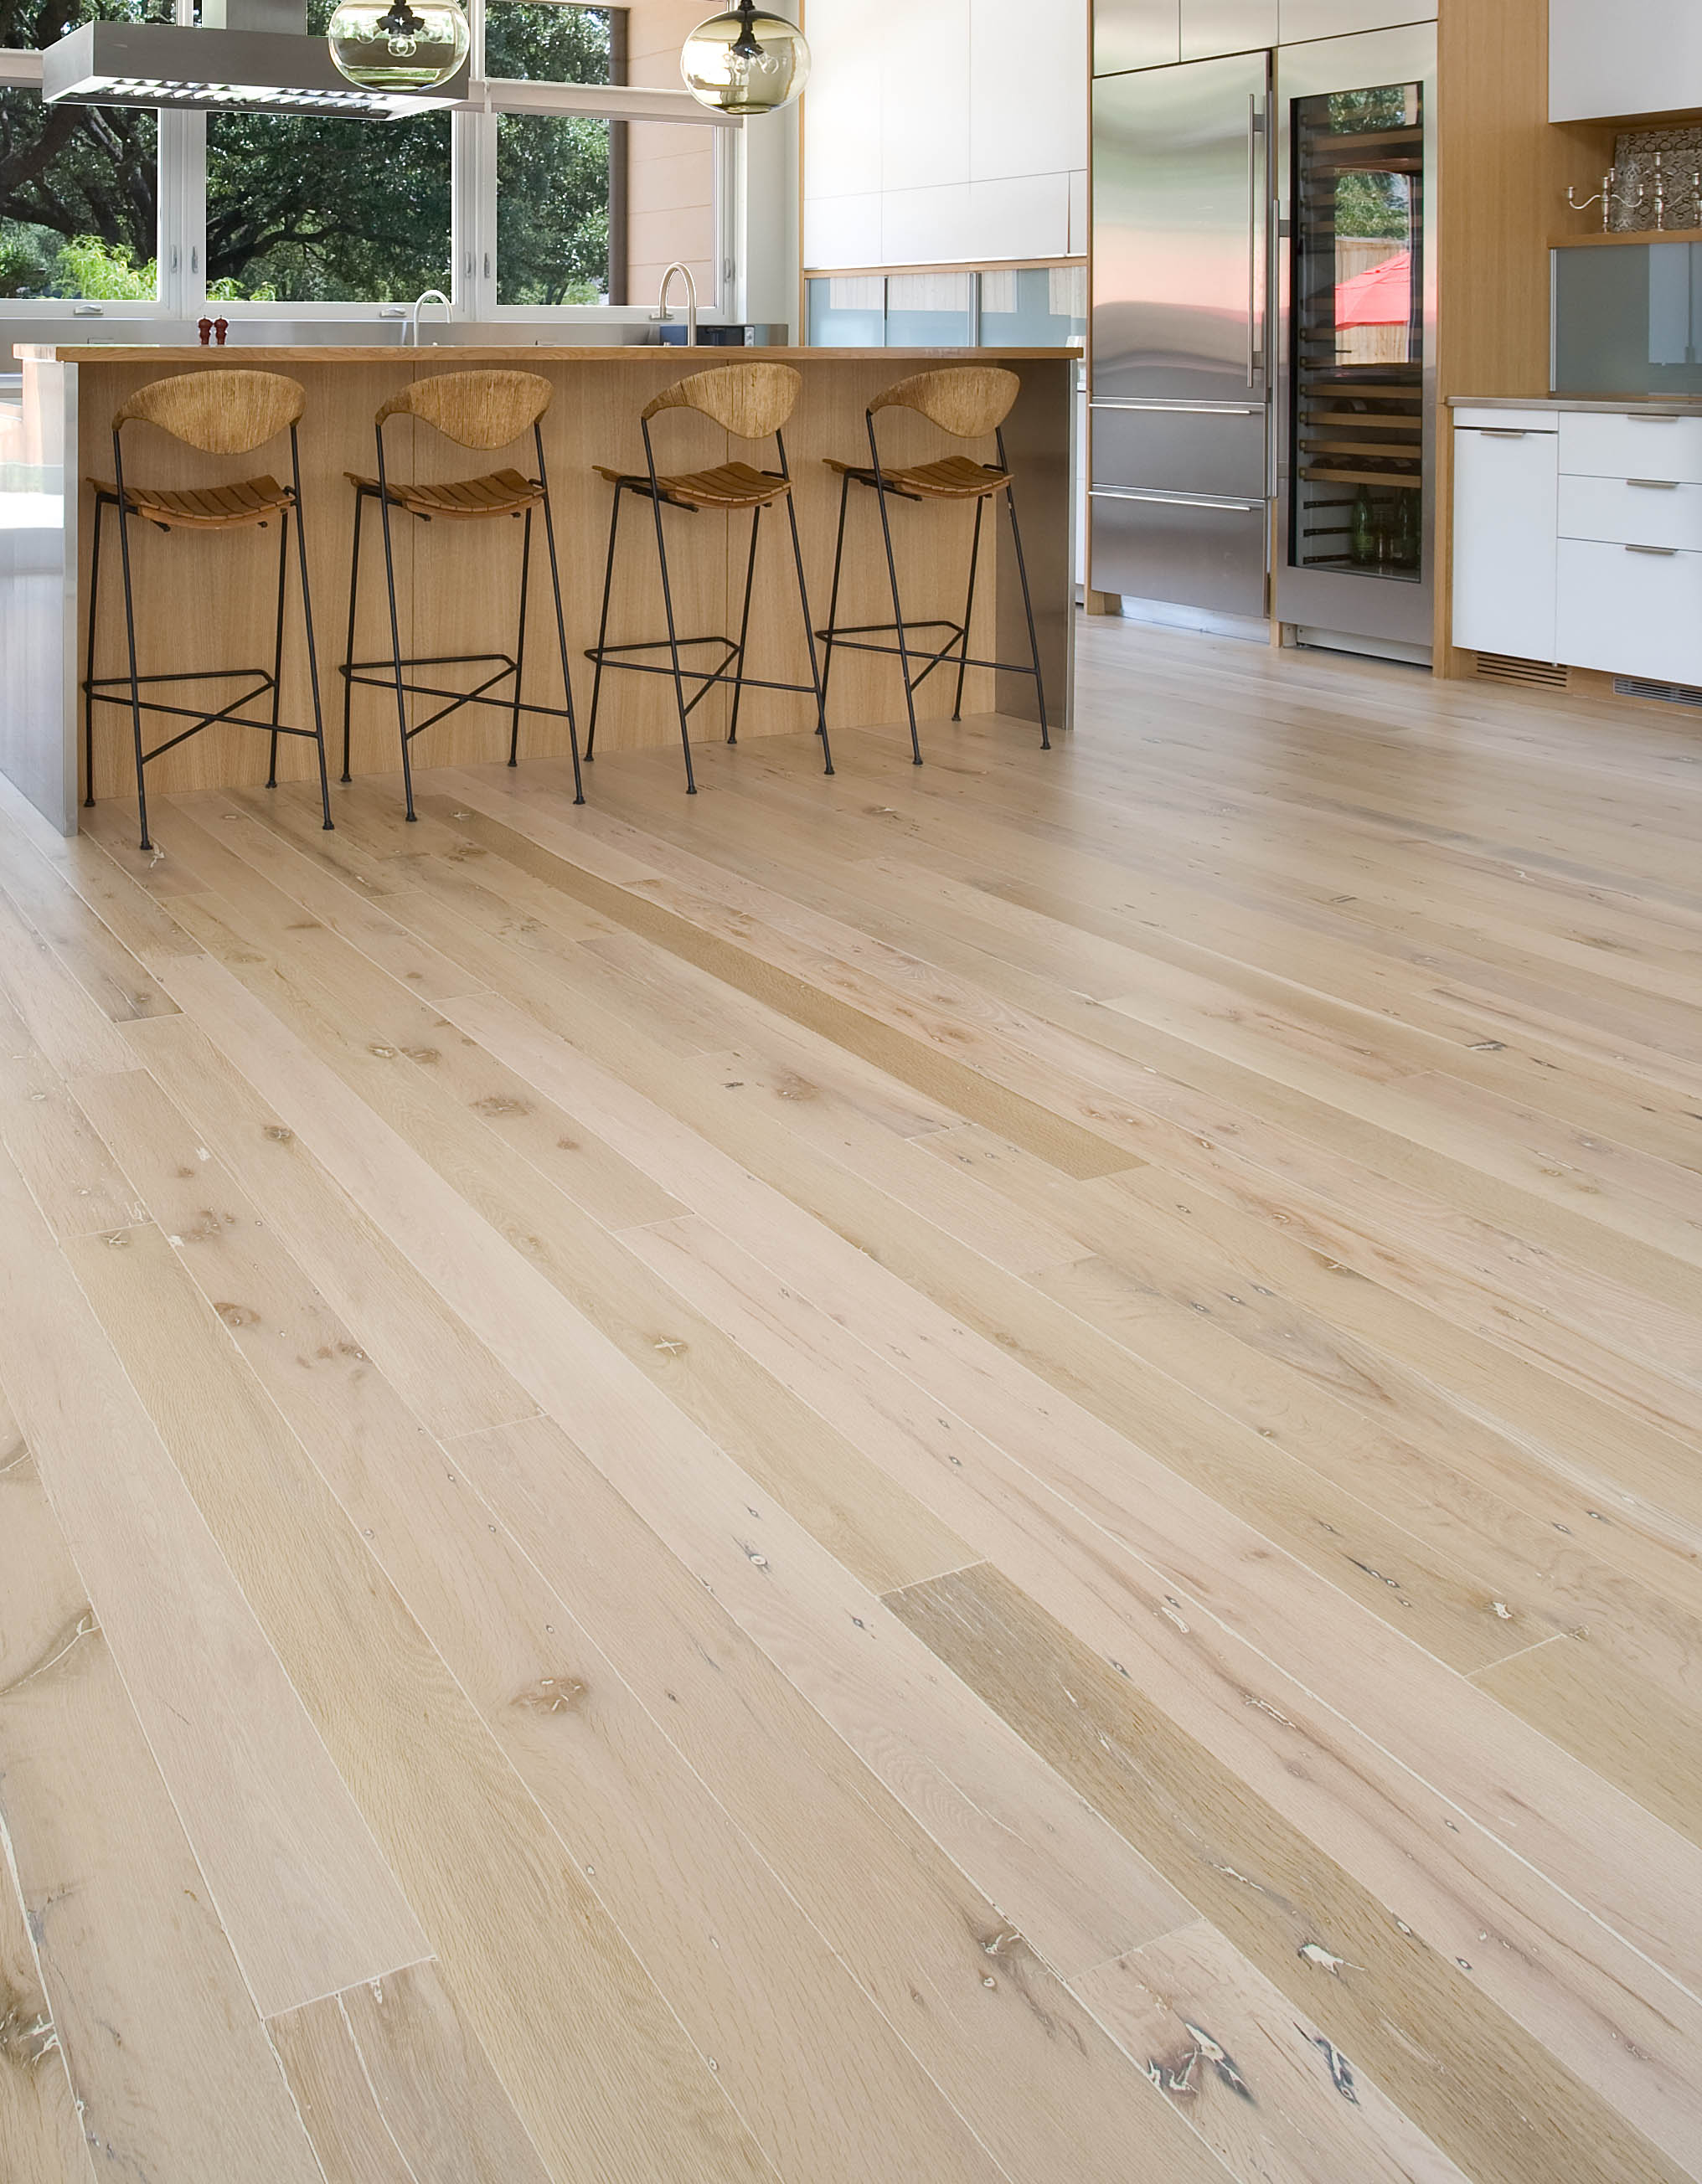 horizon floor american flooring hickory cambridge windsor product estate wood